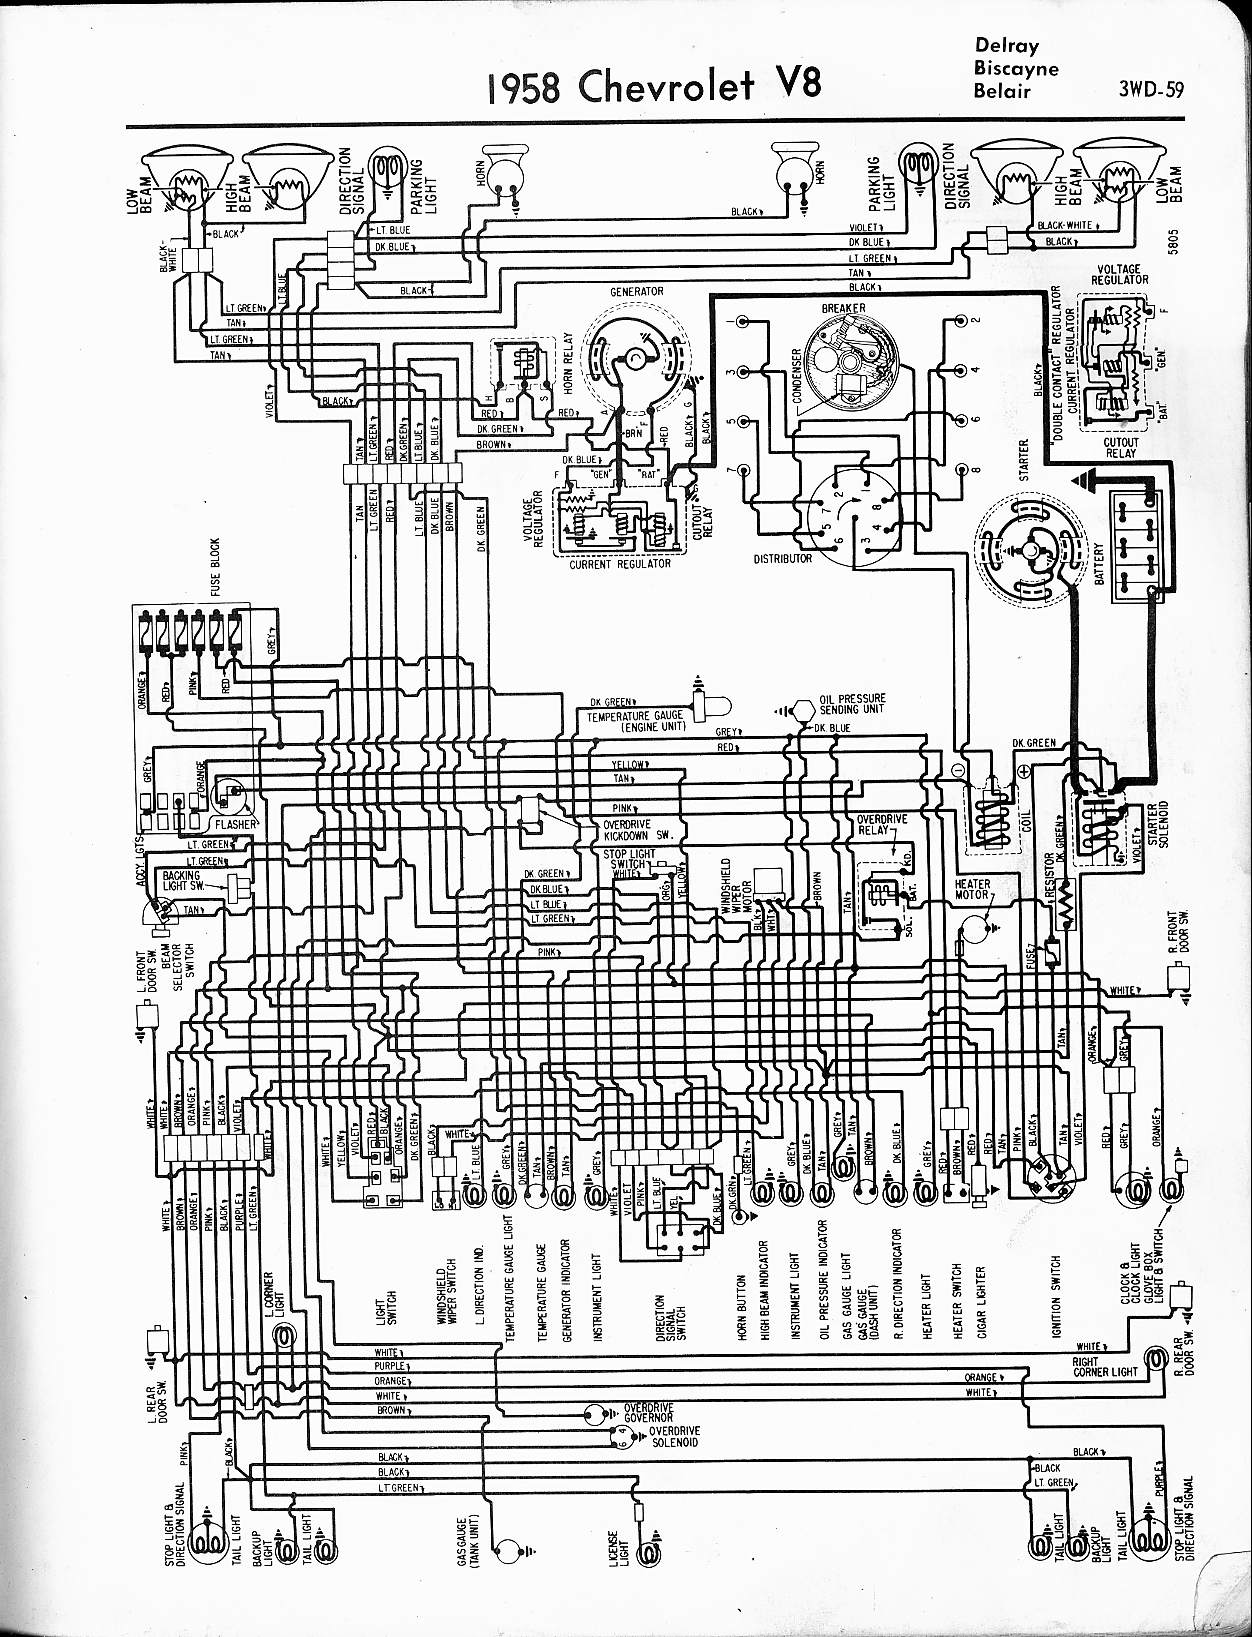 1957 chevy truck wiring harness diagram free 57 - 65 chevy wiring diagrams 2003 chevy truck wiring harness diagram